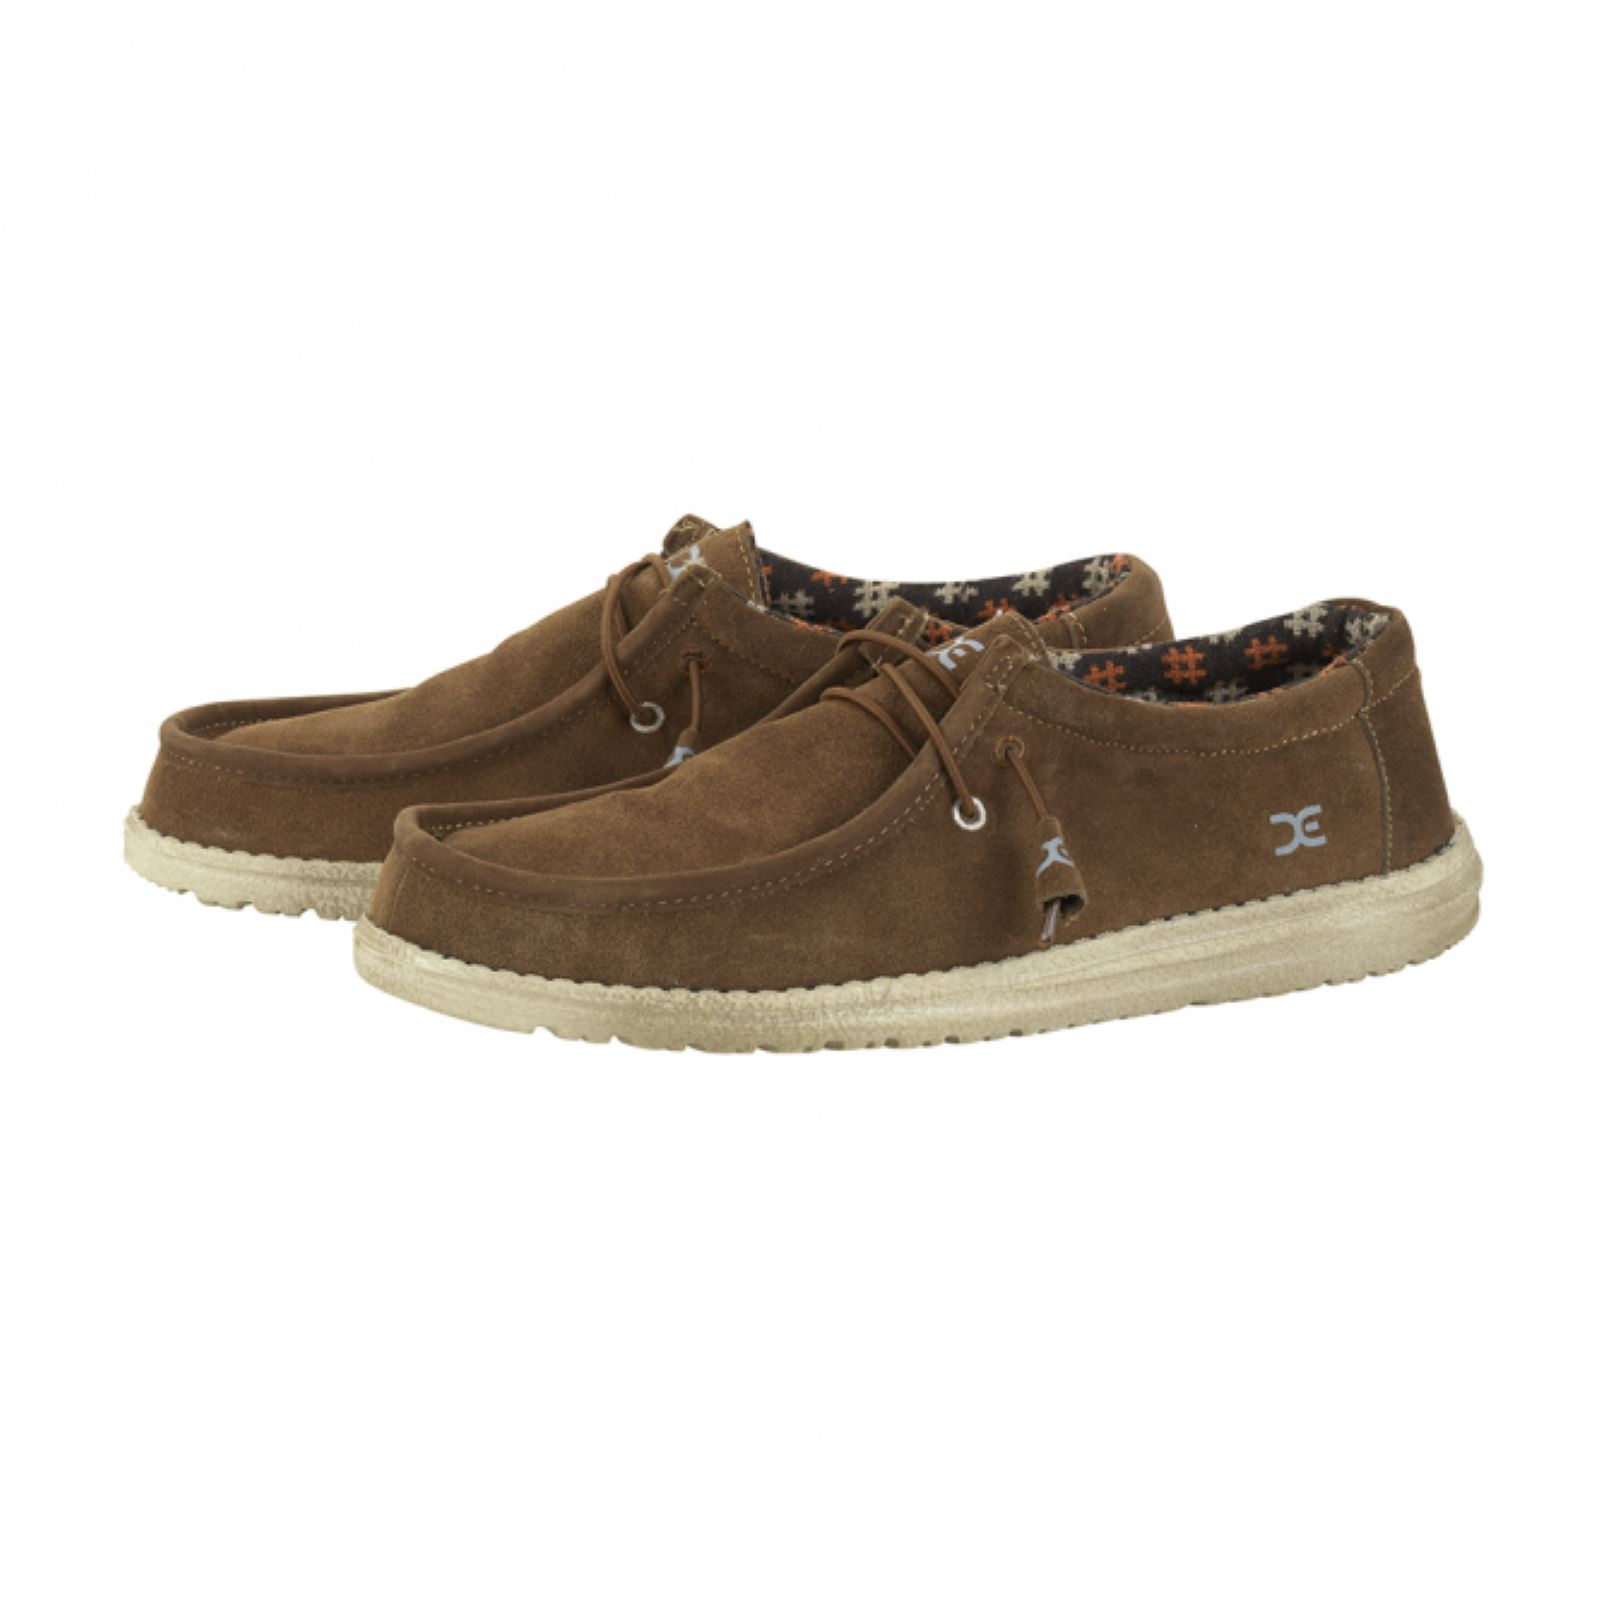 Hey Dude 2 Eye hommes Chaussures Wally Brown Nut Suede Lace Up Mule Leather Lined Insole